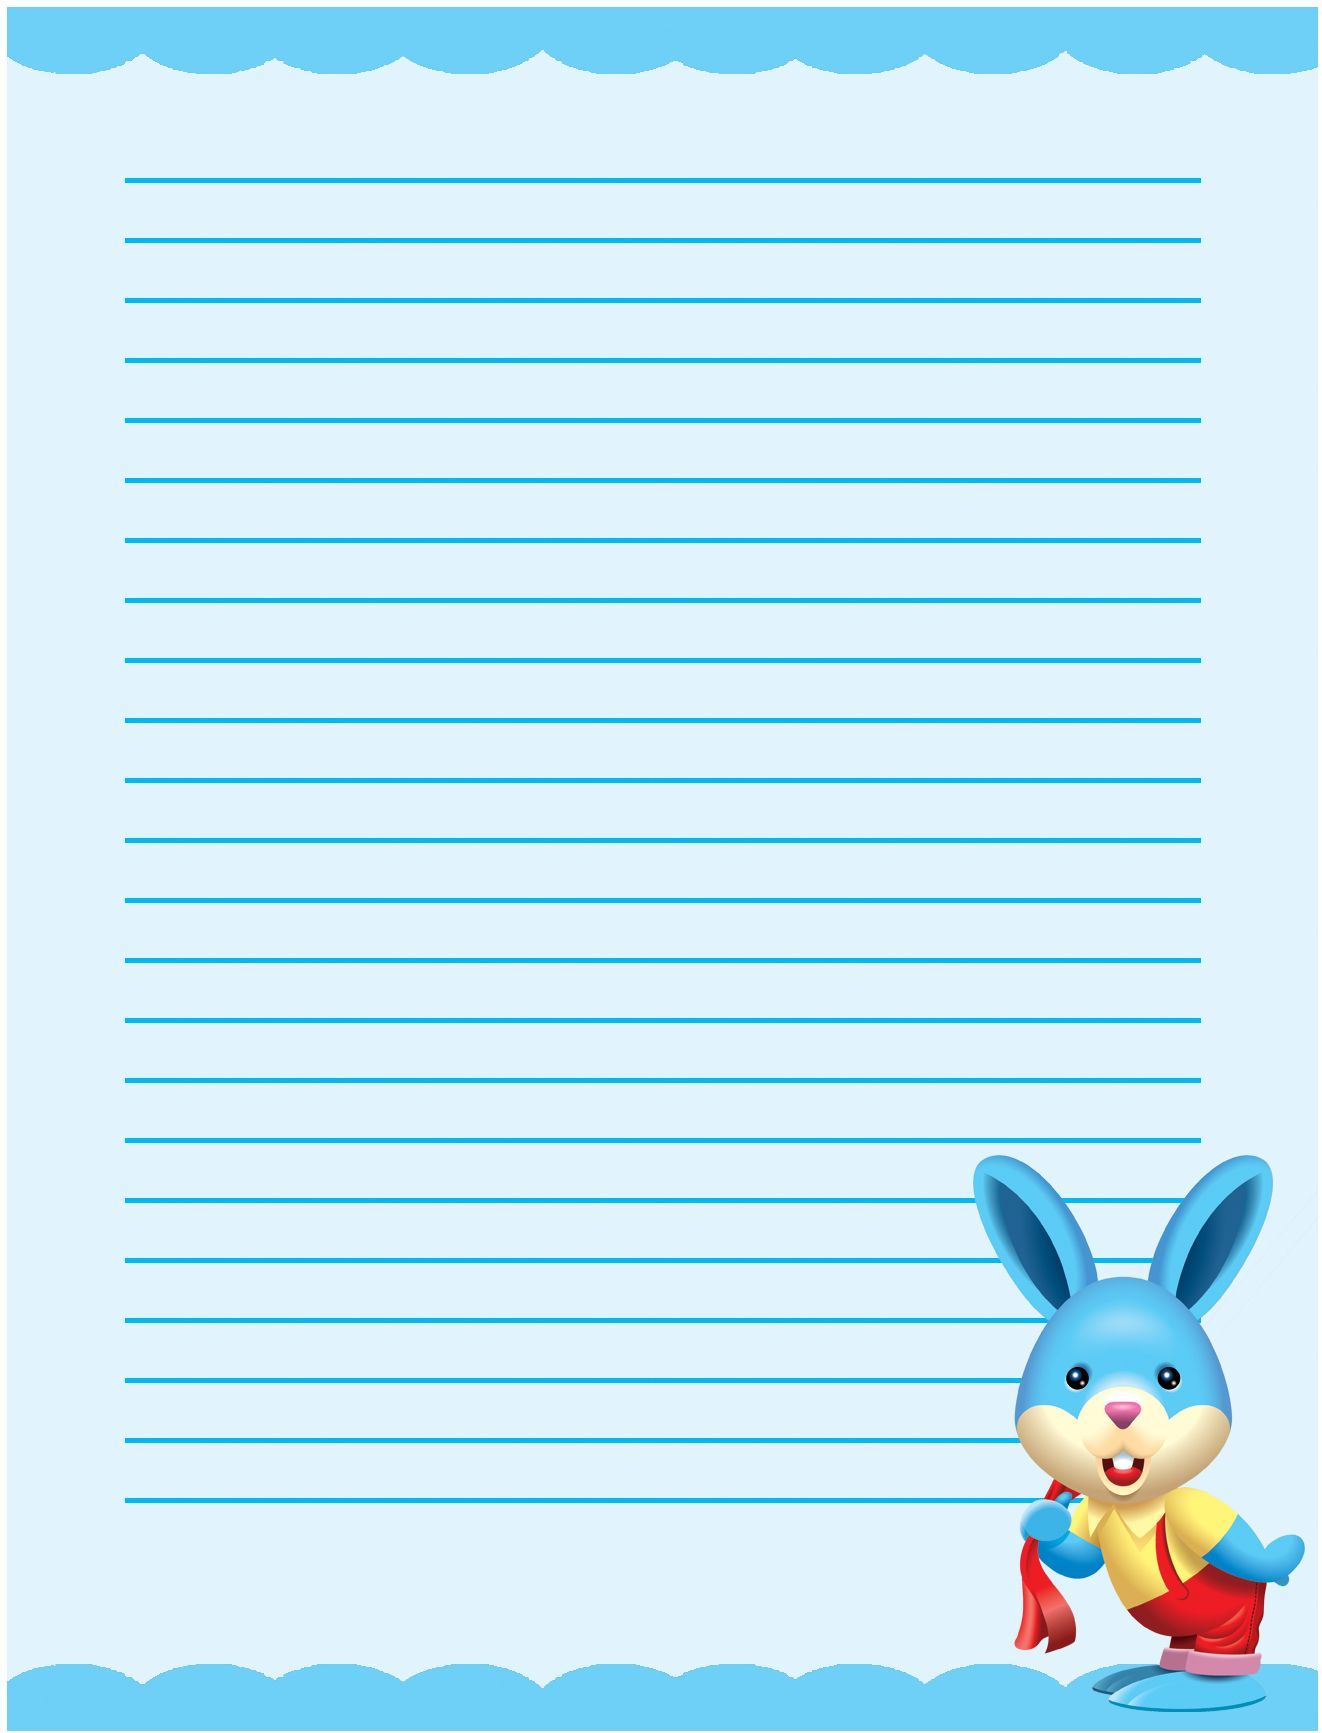 Cute bunny single lined writing paper template – School Writing Paper Template